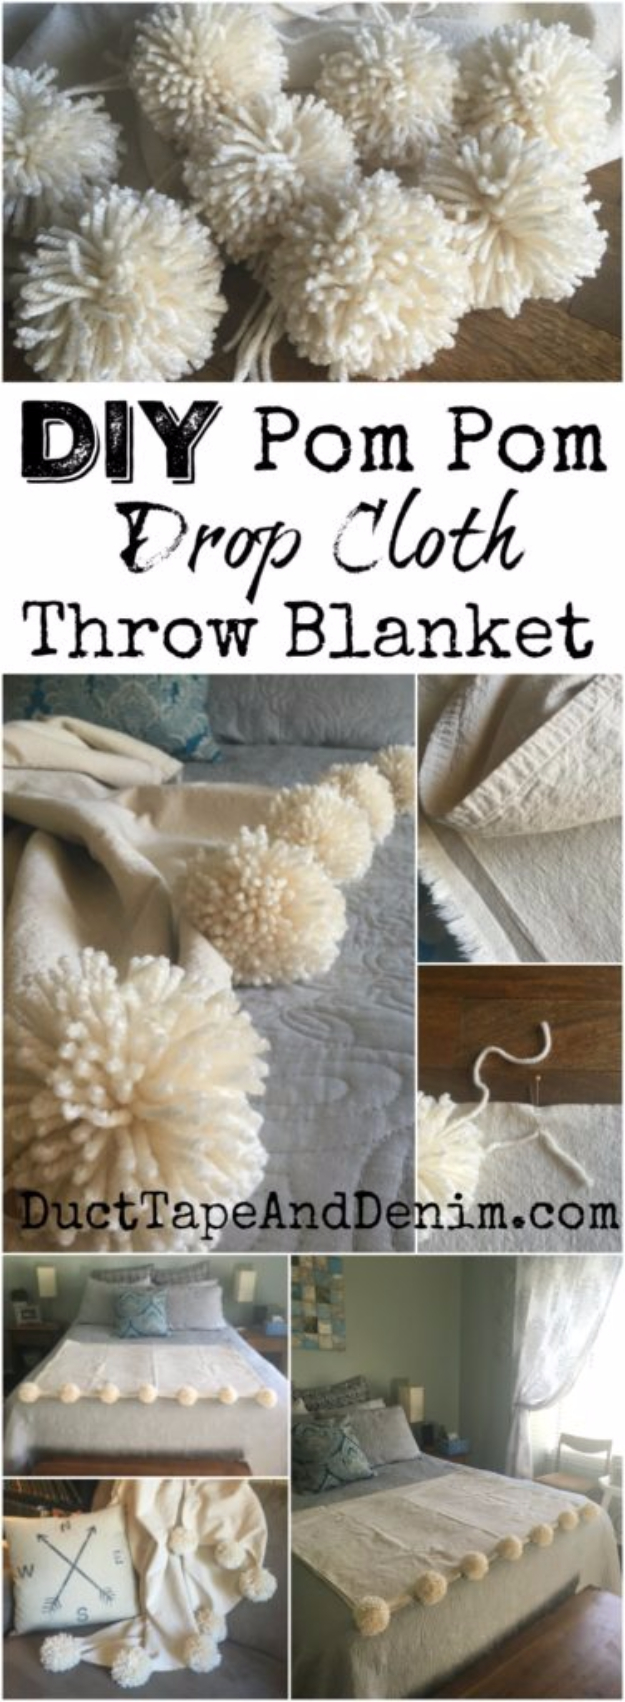 DIY Blankets and Throws - DIY Pom Pom Drop Cloth Throw Blanket - How To Make Easy Home Decor and Warm Covers for Women, Kids, Teens and Adults - Fleece, Knit, No Sew and Easy Projects to Make for Bed and Sofa - Creative Blanket Sewing Projects and Crafts http://diyjoy.com/diy-blankets-throws